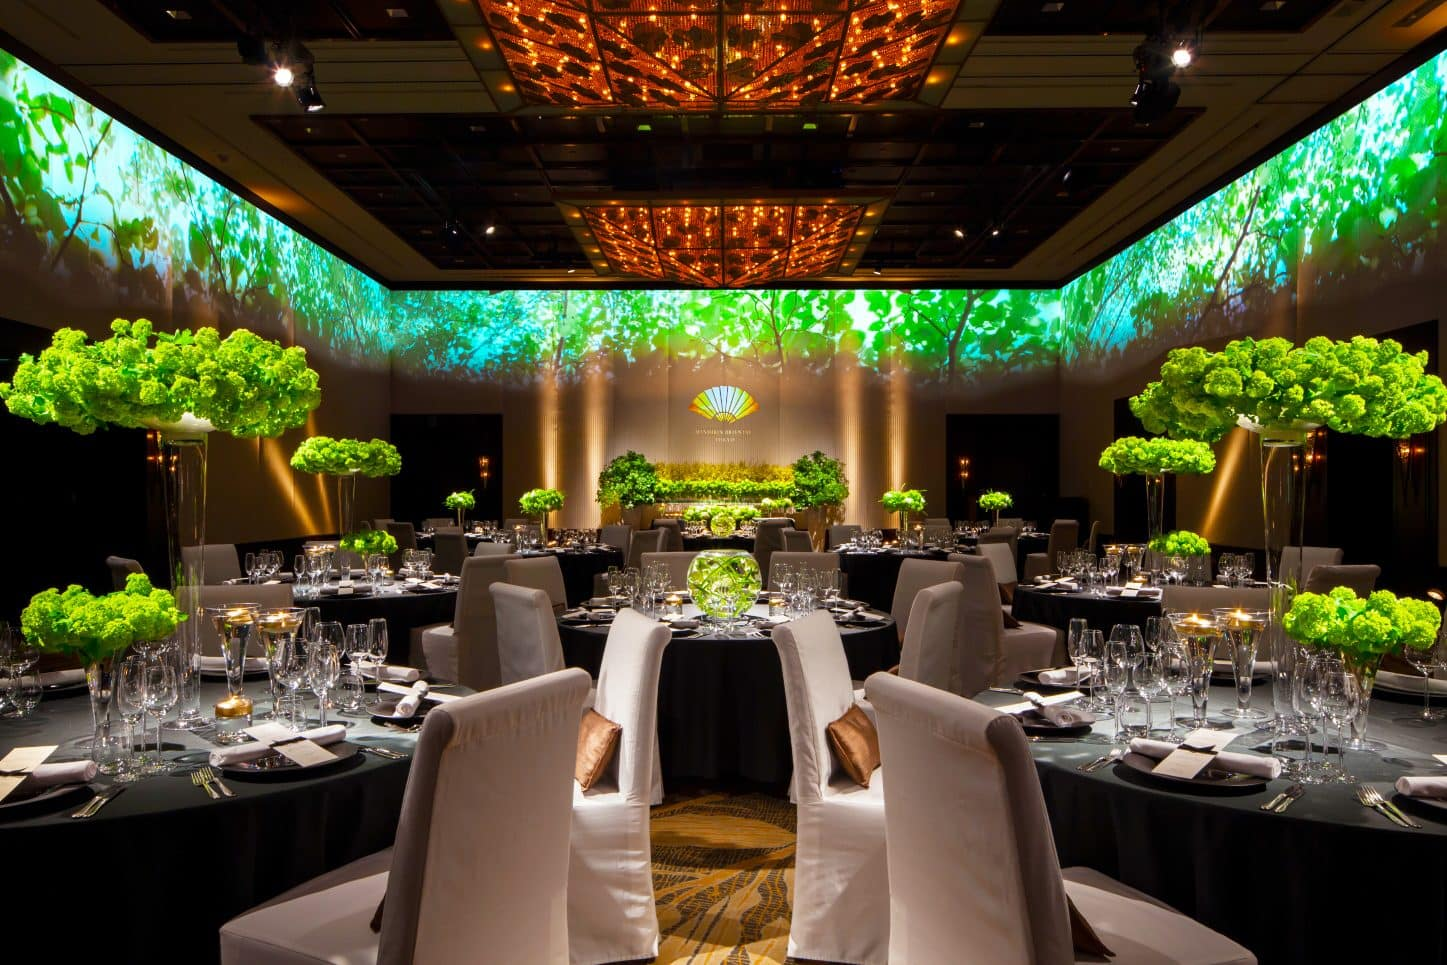 The ballroom laid out for a wedding at Mandarin Oriental, Tokyo